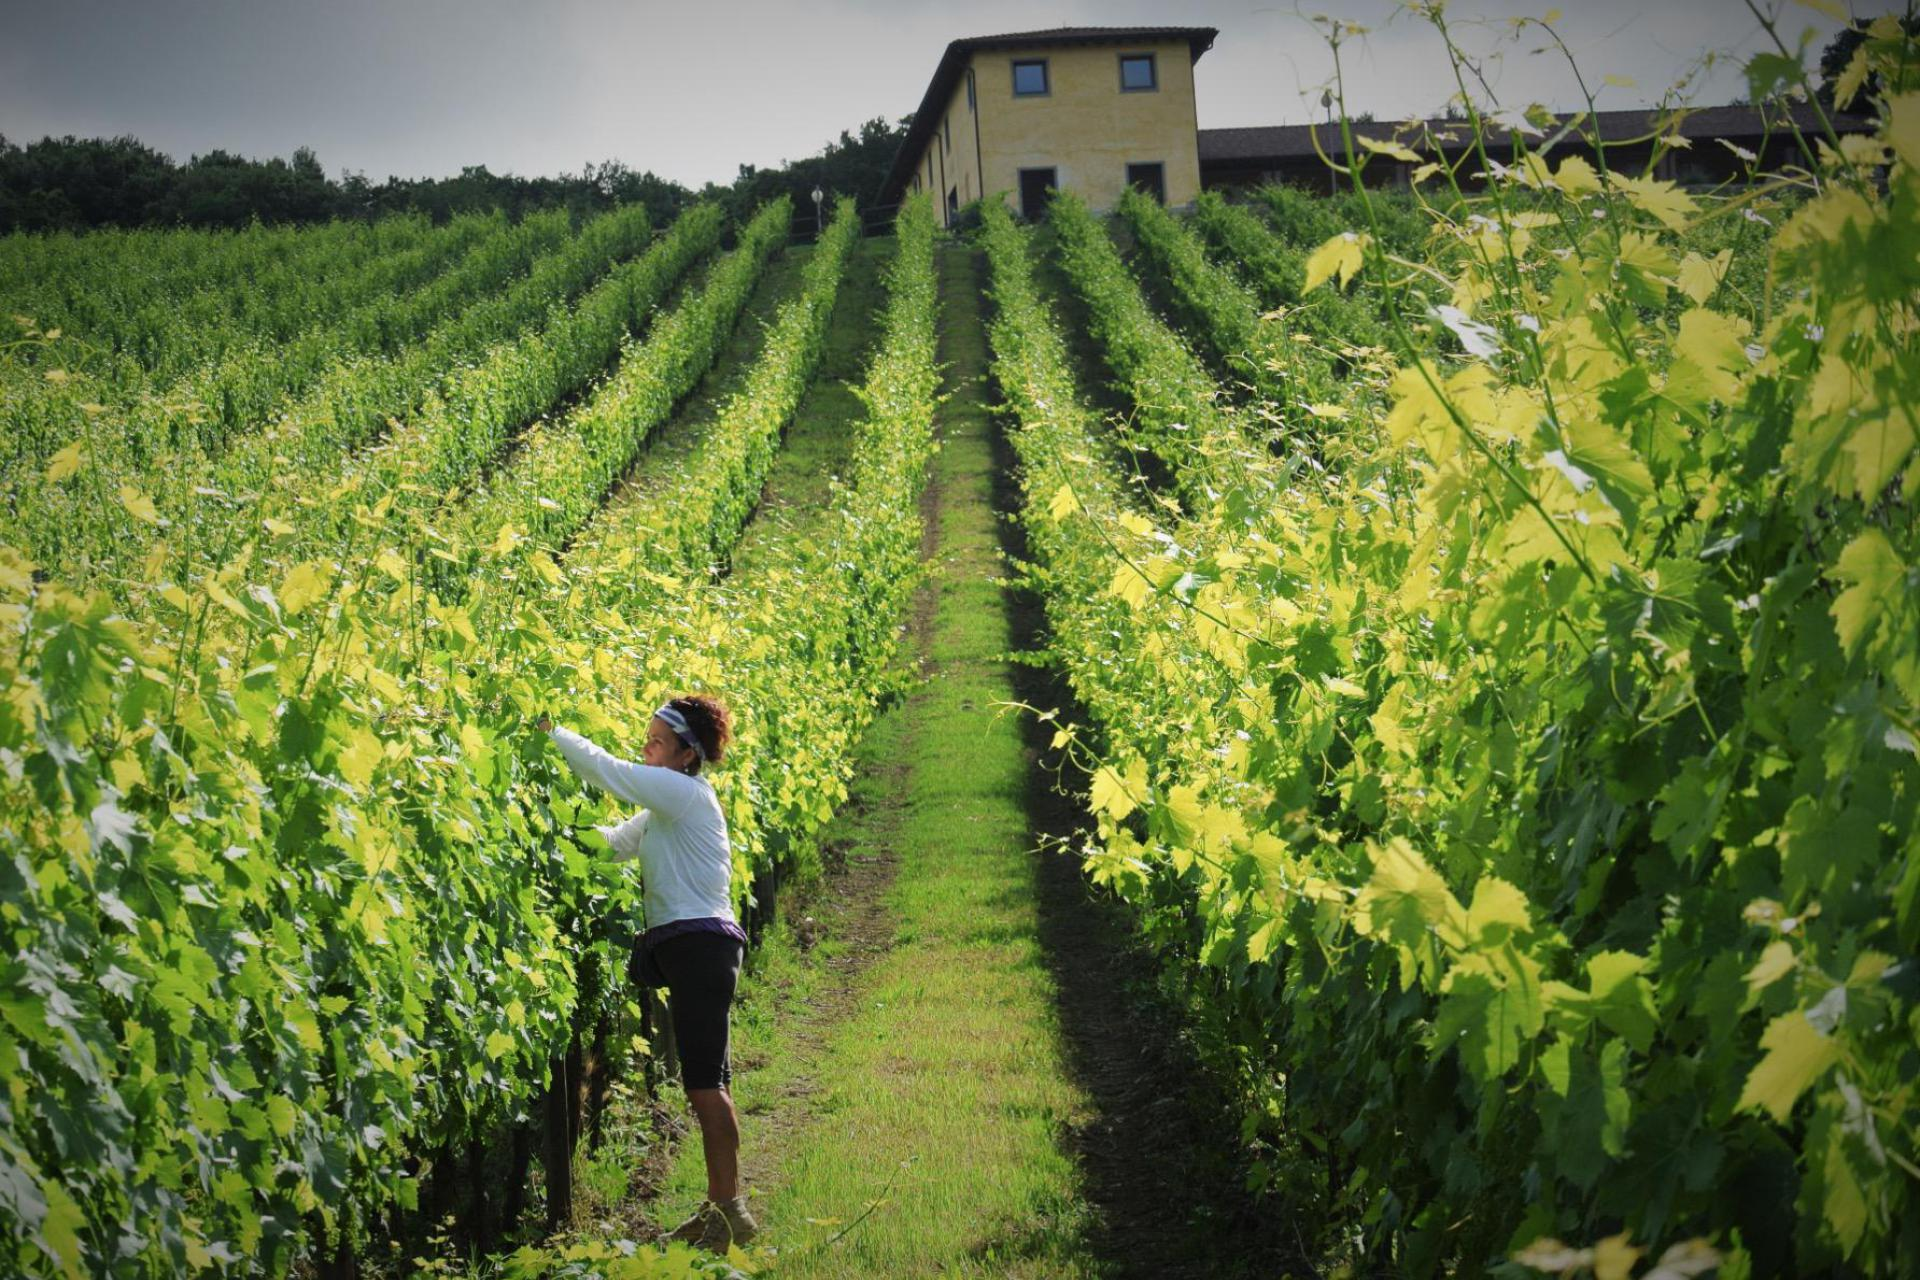 Agriturismo Piedmont Luxury agriturismo Piedmont, ideal for wine and food lovers